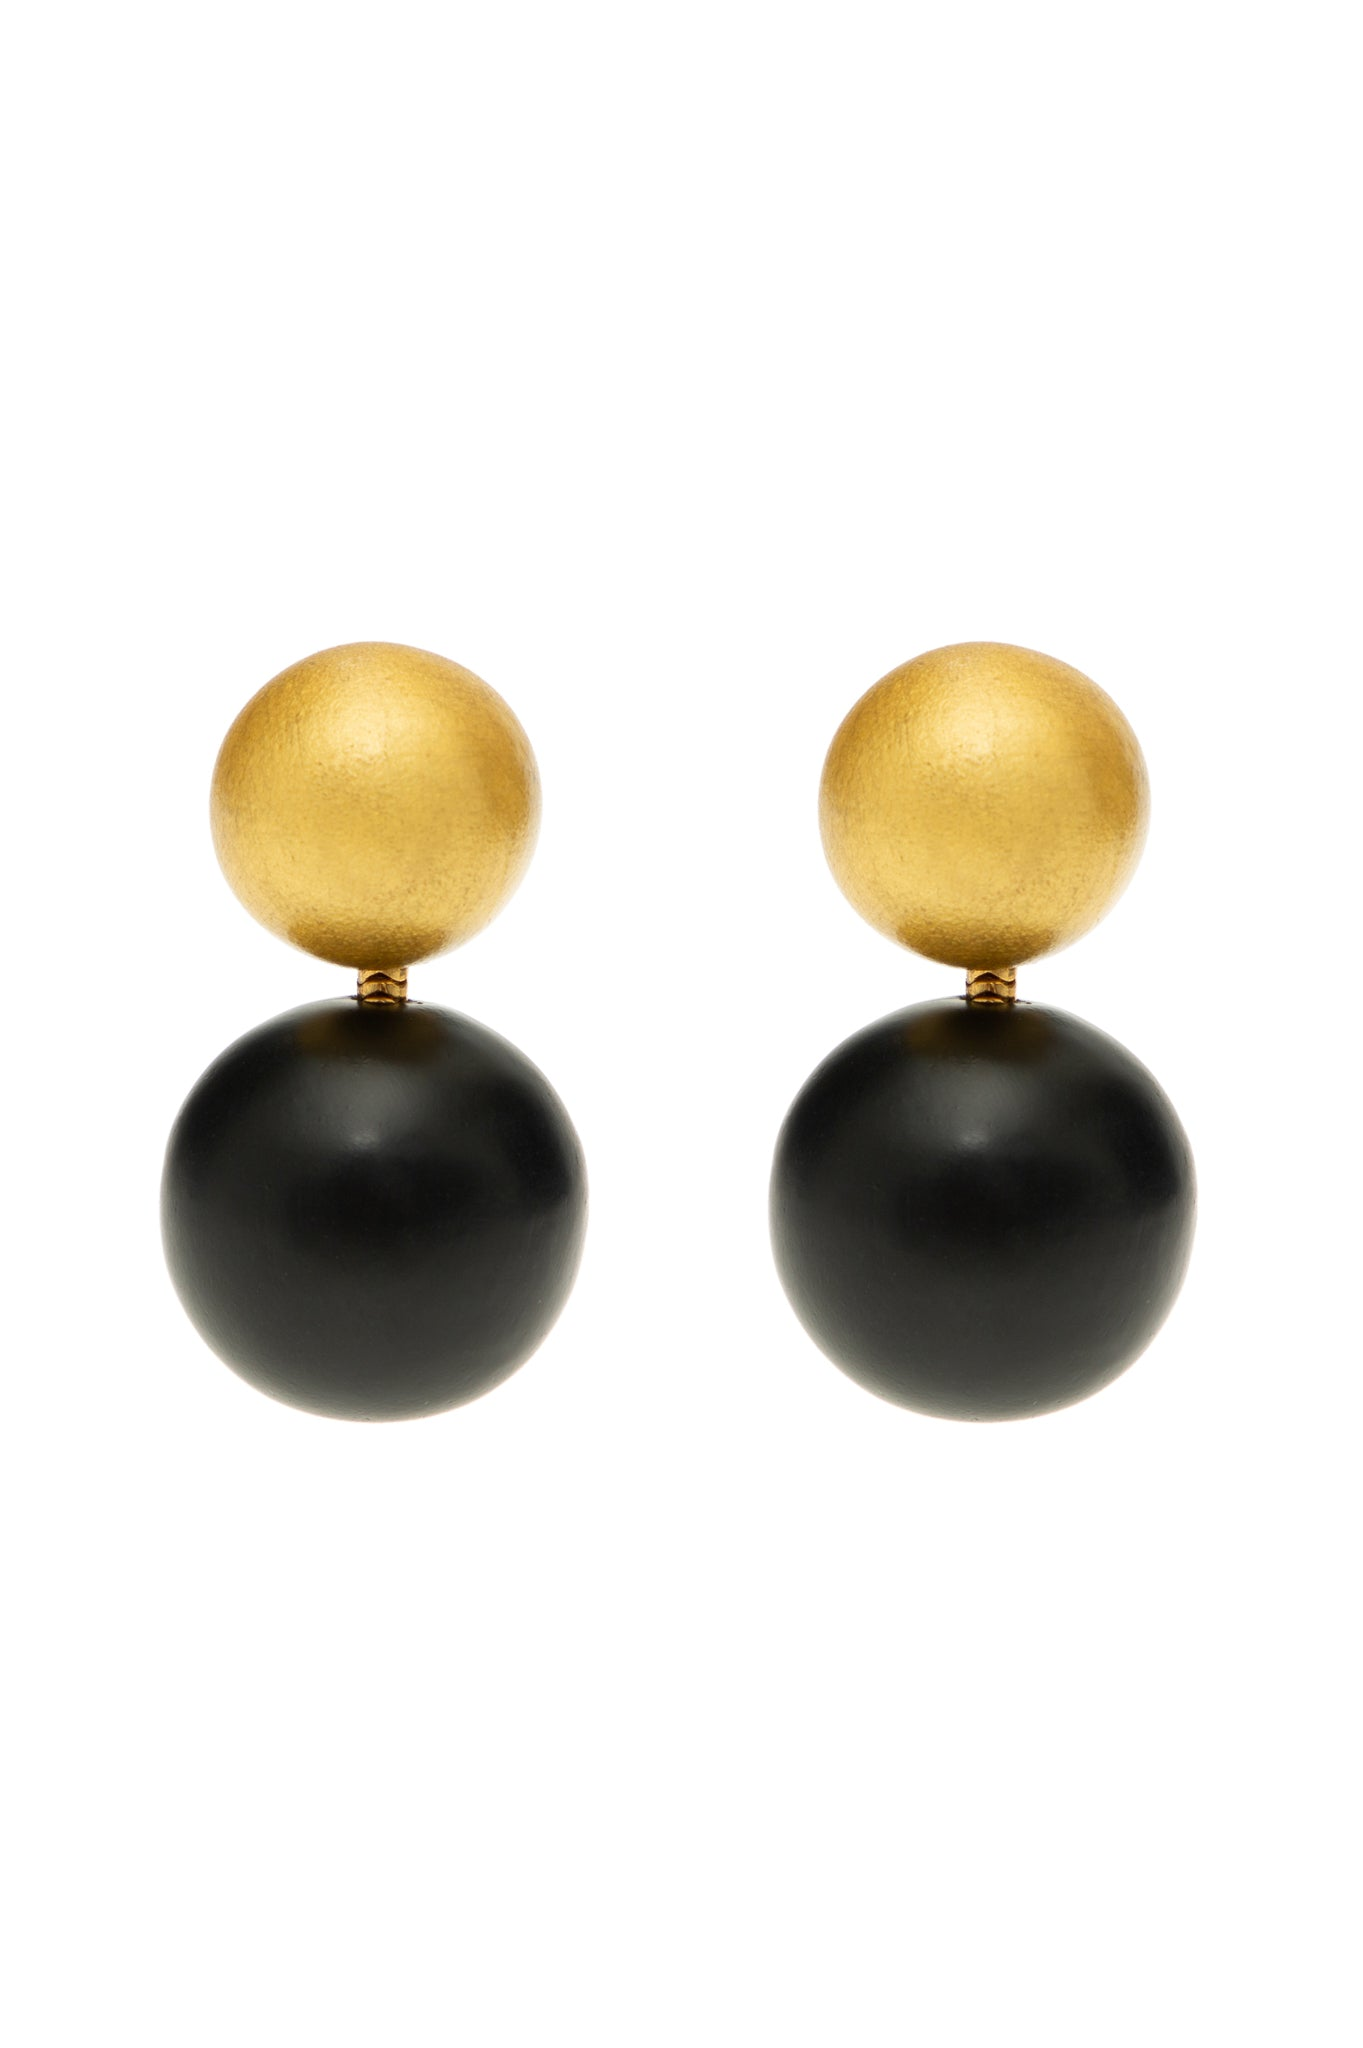 BLACK AND GOLD TWO BALLS WOOD EARRINGS